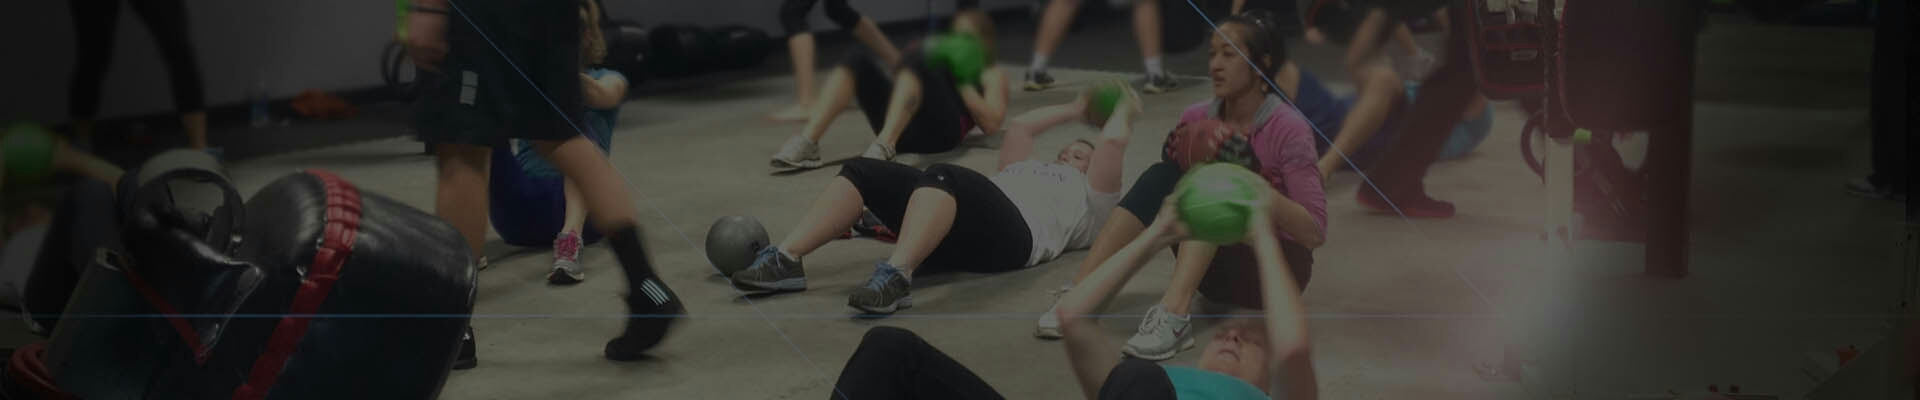 Bootcamp Training Southport Header 372426297.jpg